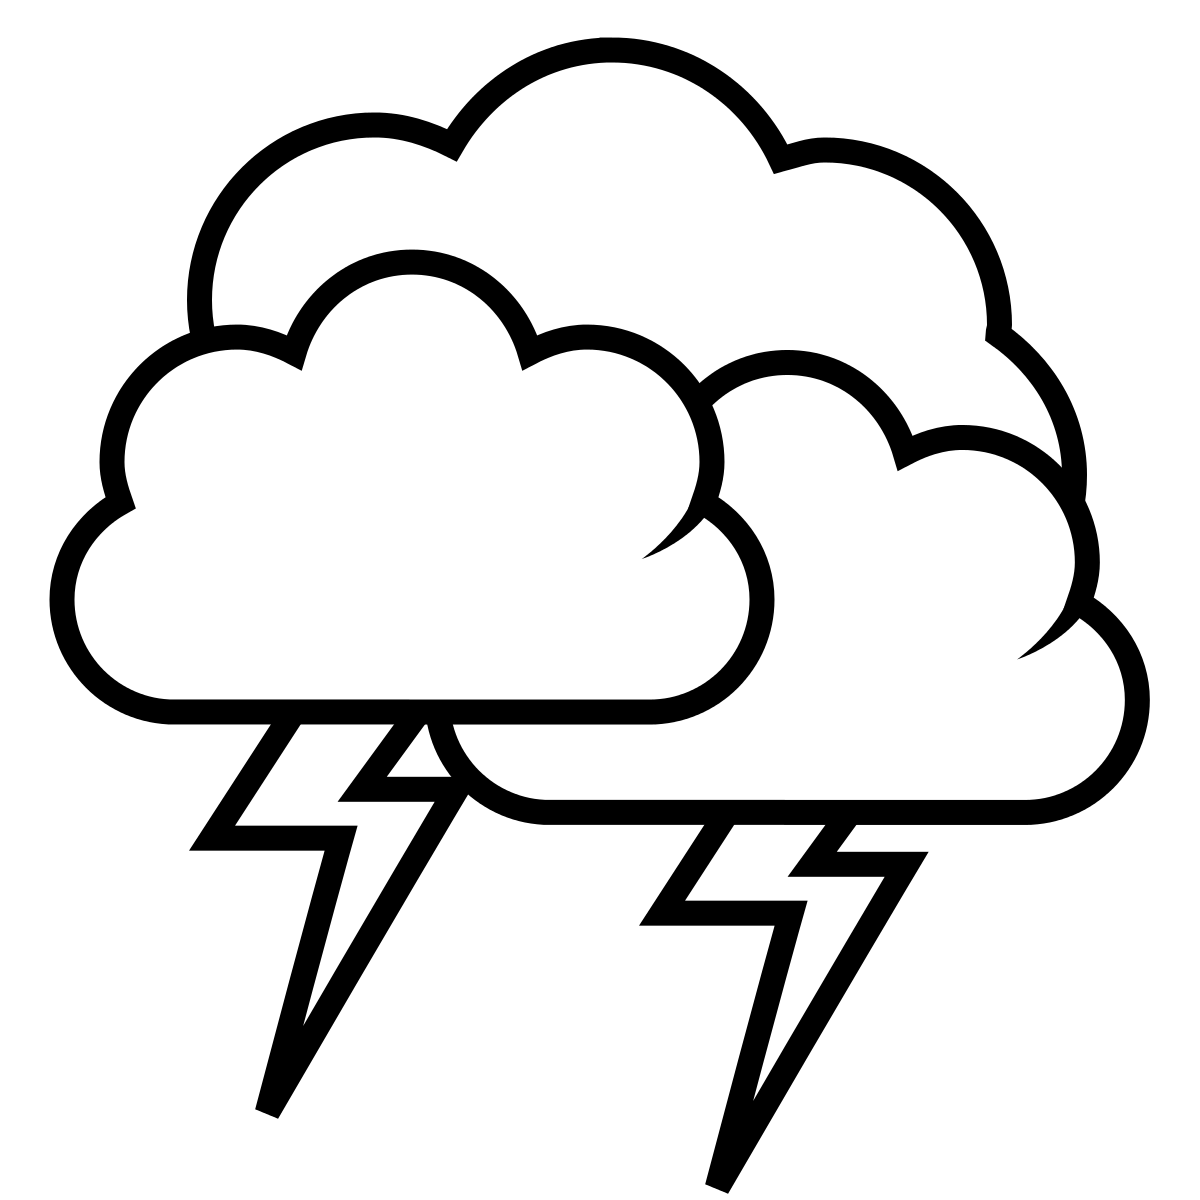 banner black and white download thunderstorm clipart thunderbolt #84867131